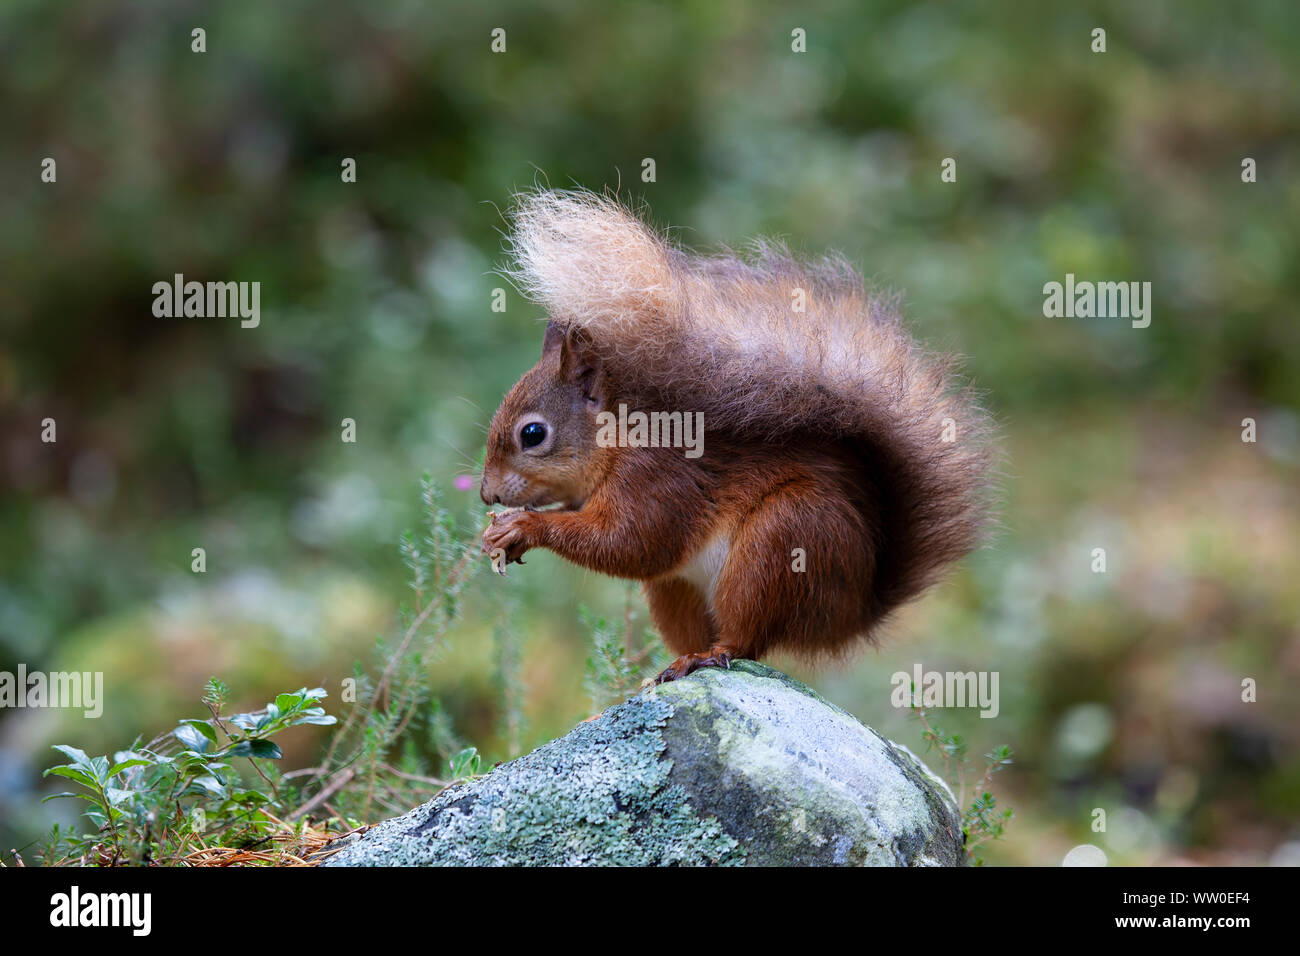 Close up of a red squirrel Sciurus vulgaris sitting on a small stone and eating a nut in Scotland Stock Photo